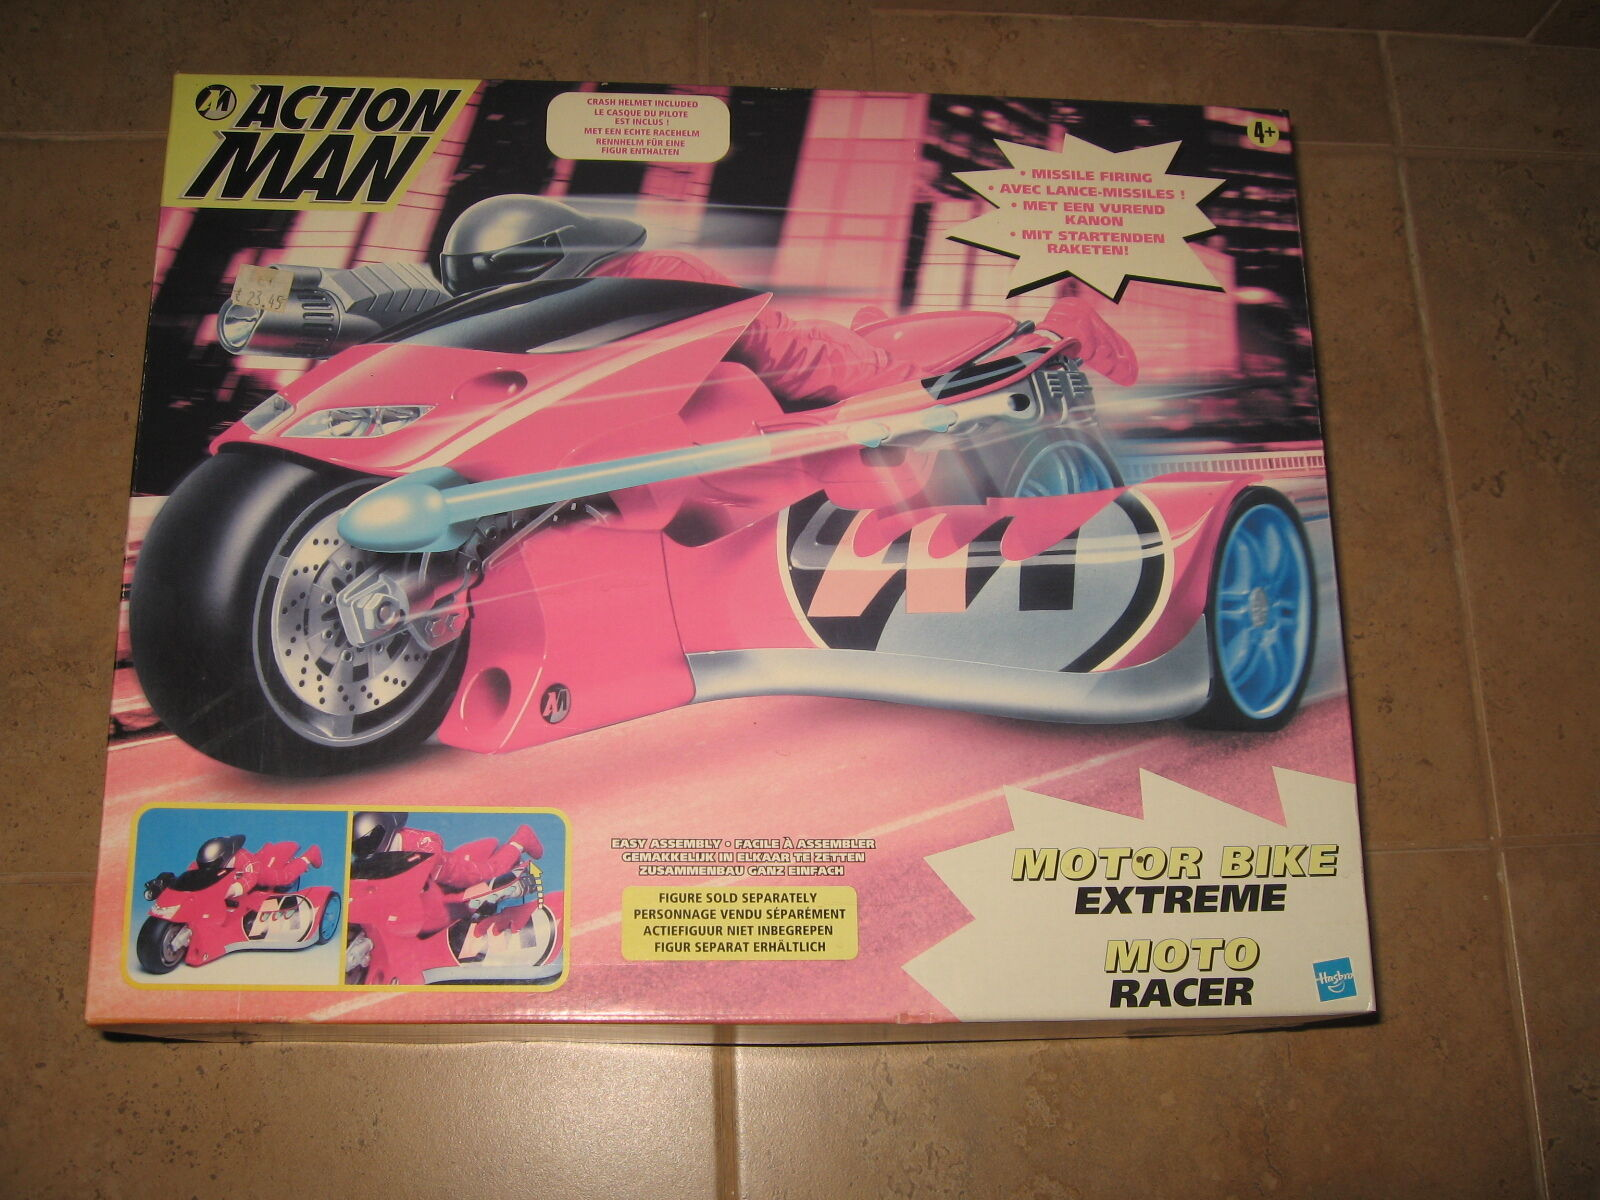 HASBRO ACTION MAN MOTOR BIKE EXTREME-MOTO RACER-VEHICLE 2000 EUROPEAN EUROPEAN EUROPEAN RARE NEW M edaaf8